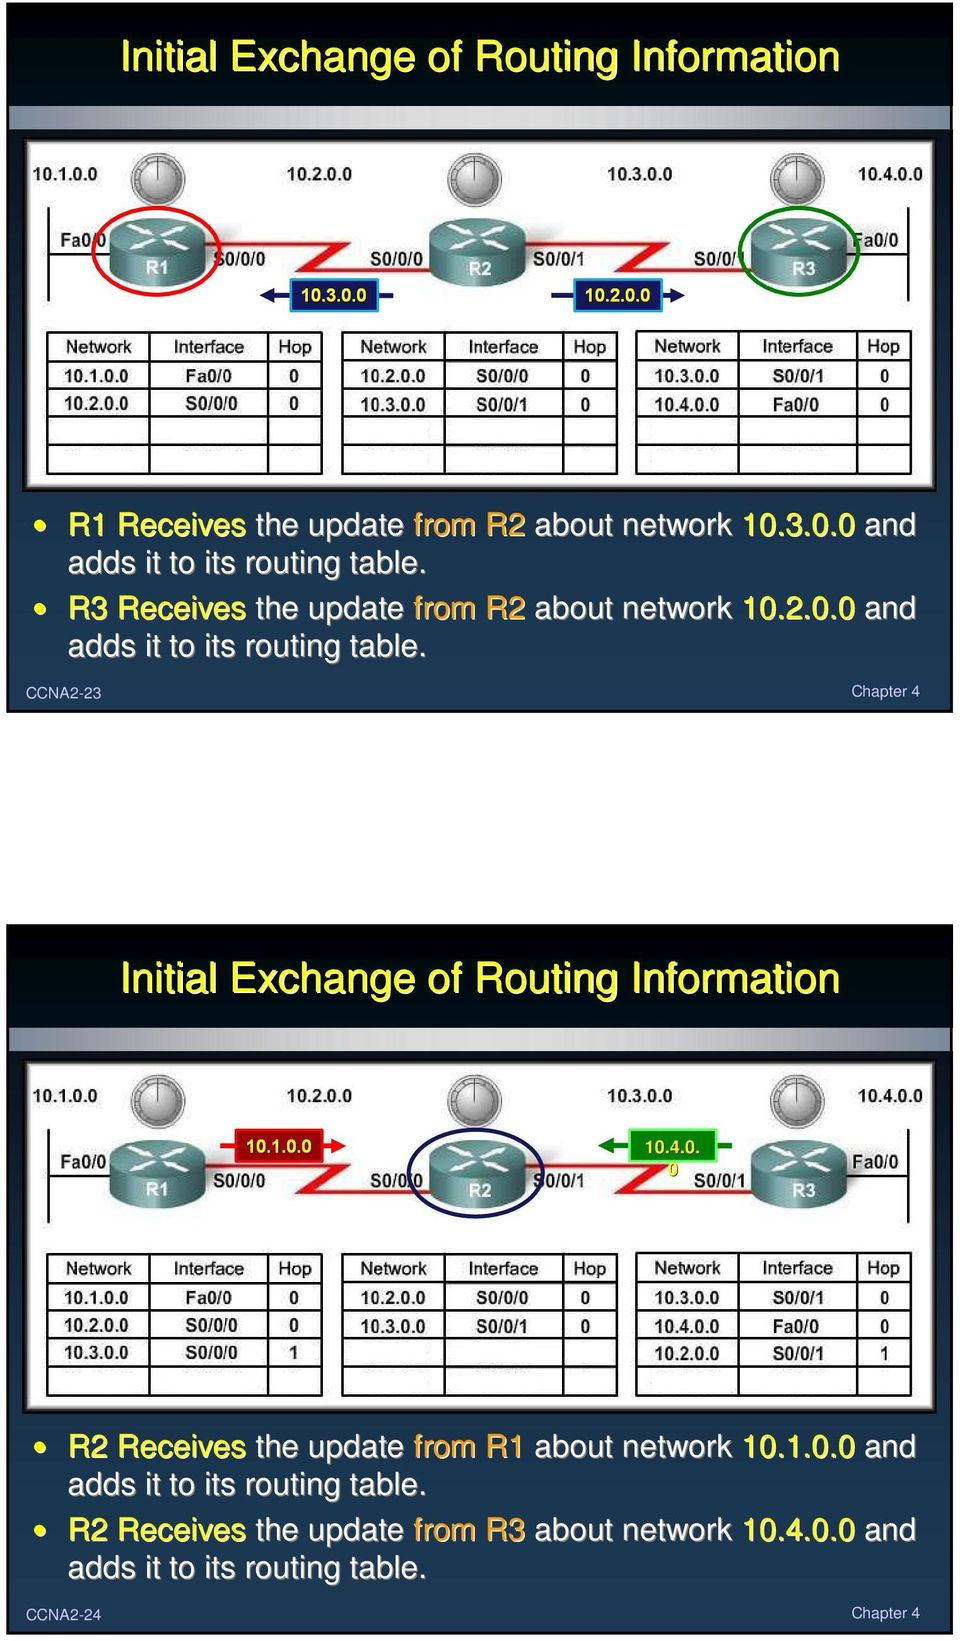 4.. R2 Receives the update from R1 about network 1.1.. and adds it to its routing table.